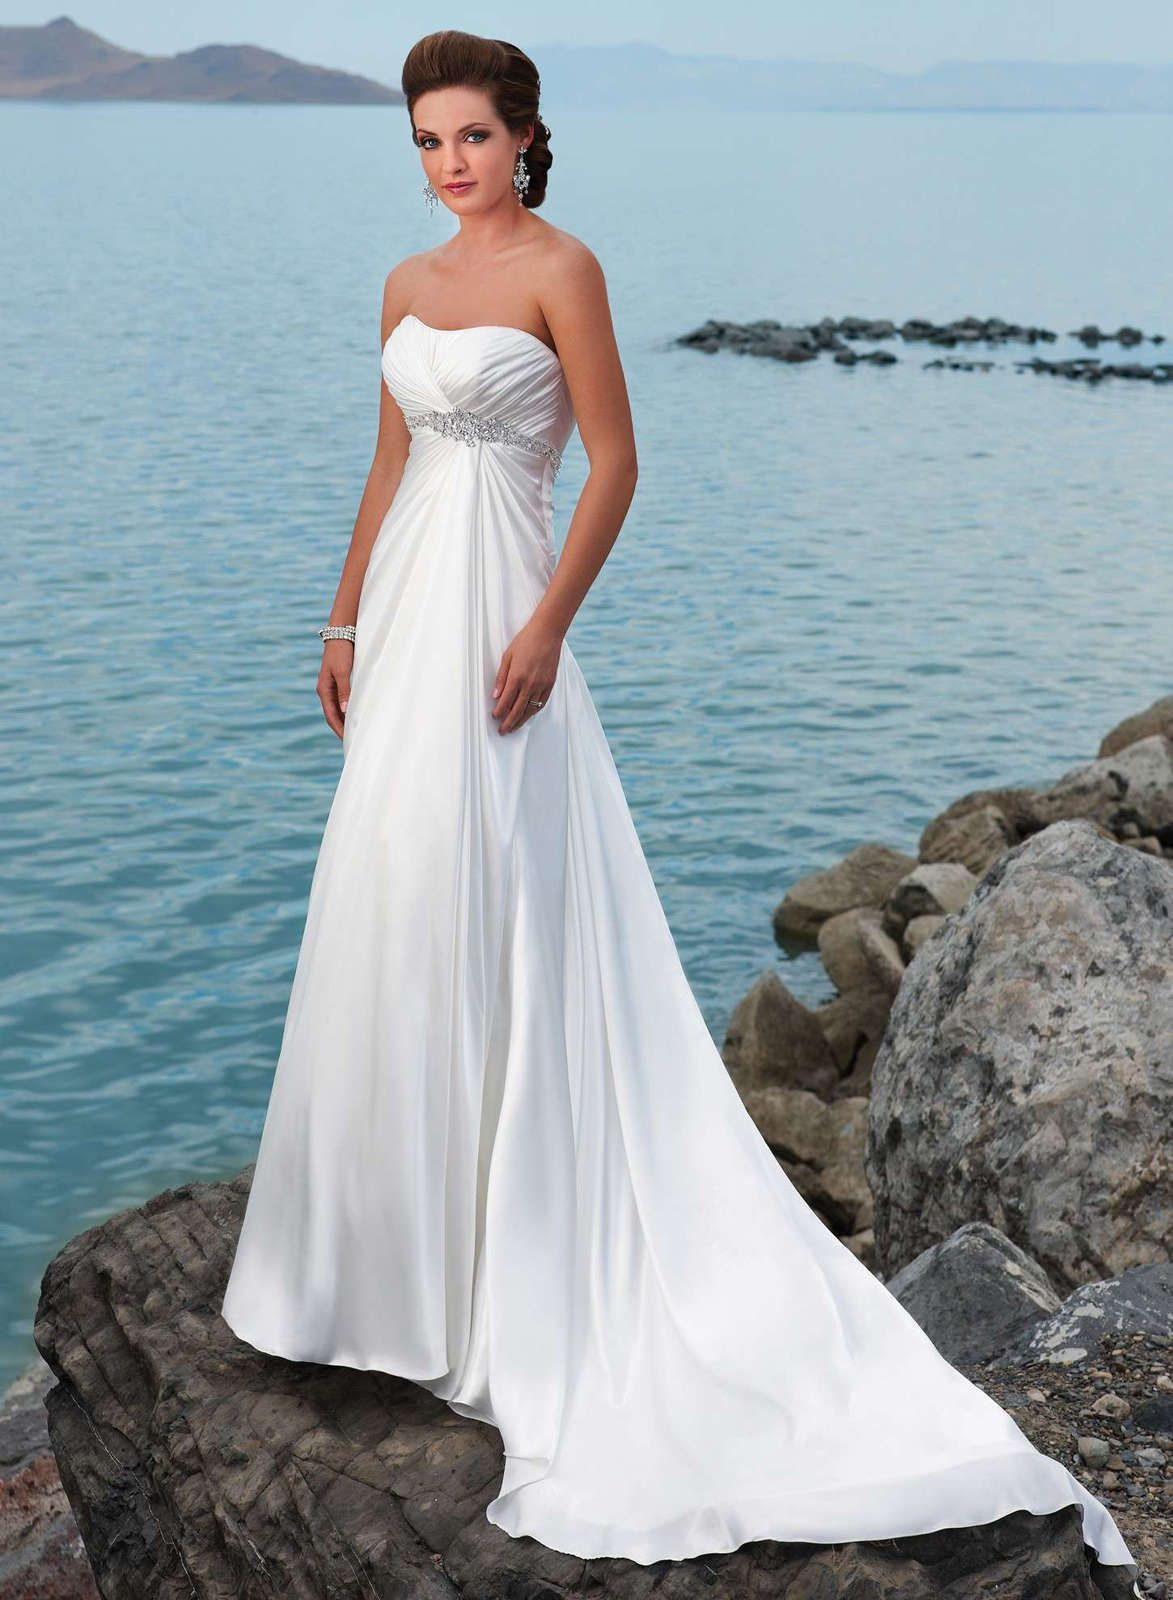 beach wedding dress ideas wedding dresses for cheap check more